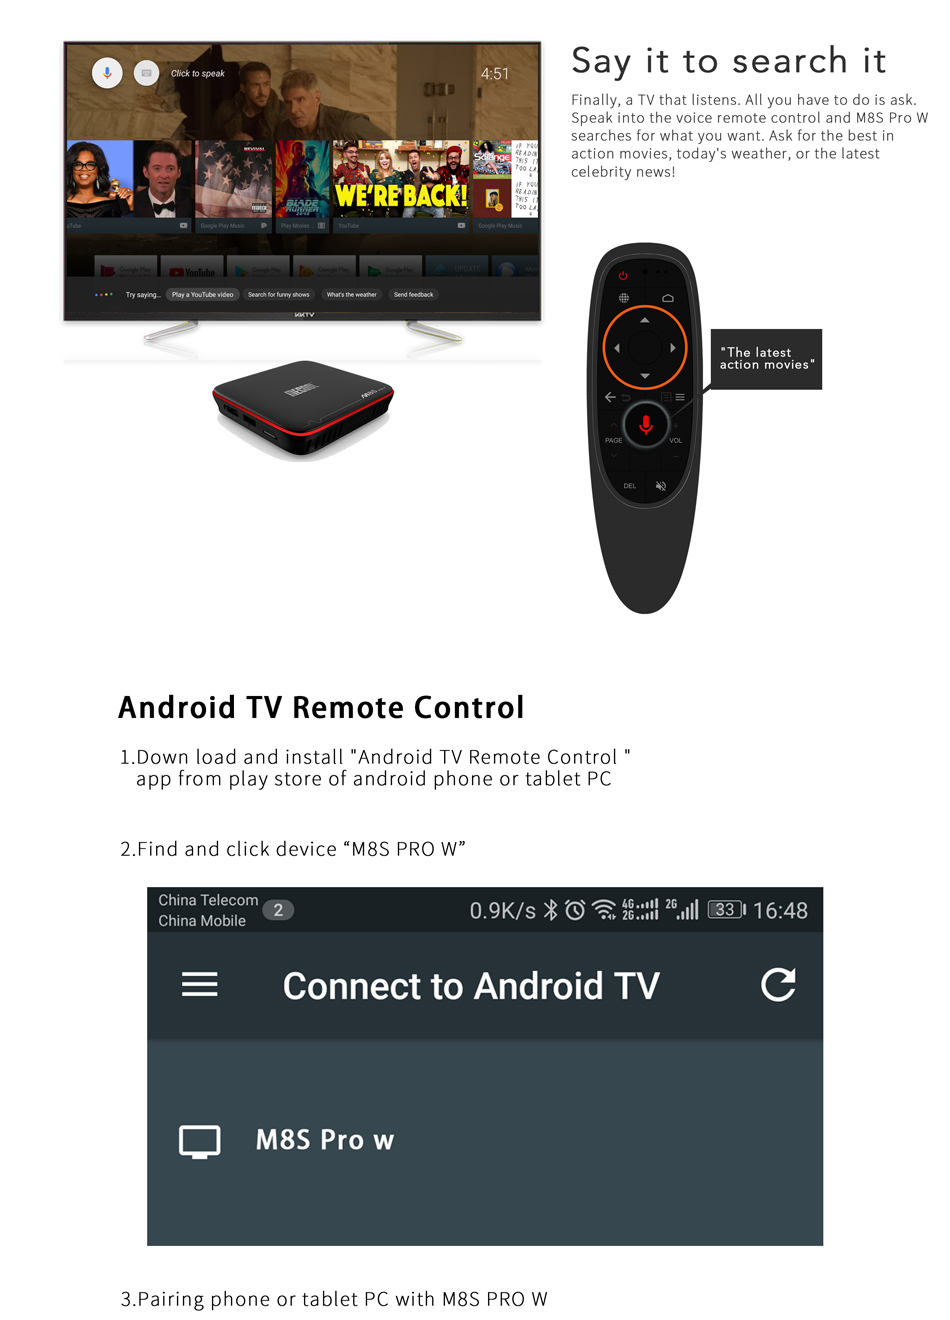 Mecool M8S PRO W S905W 2GB RAM 16GB ROM TV Box with Android TV OS Support Voice Input Control